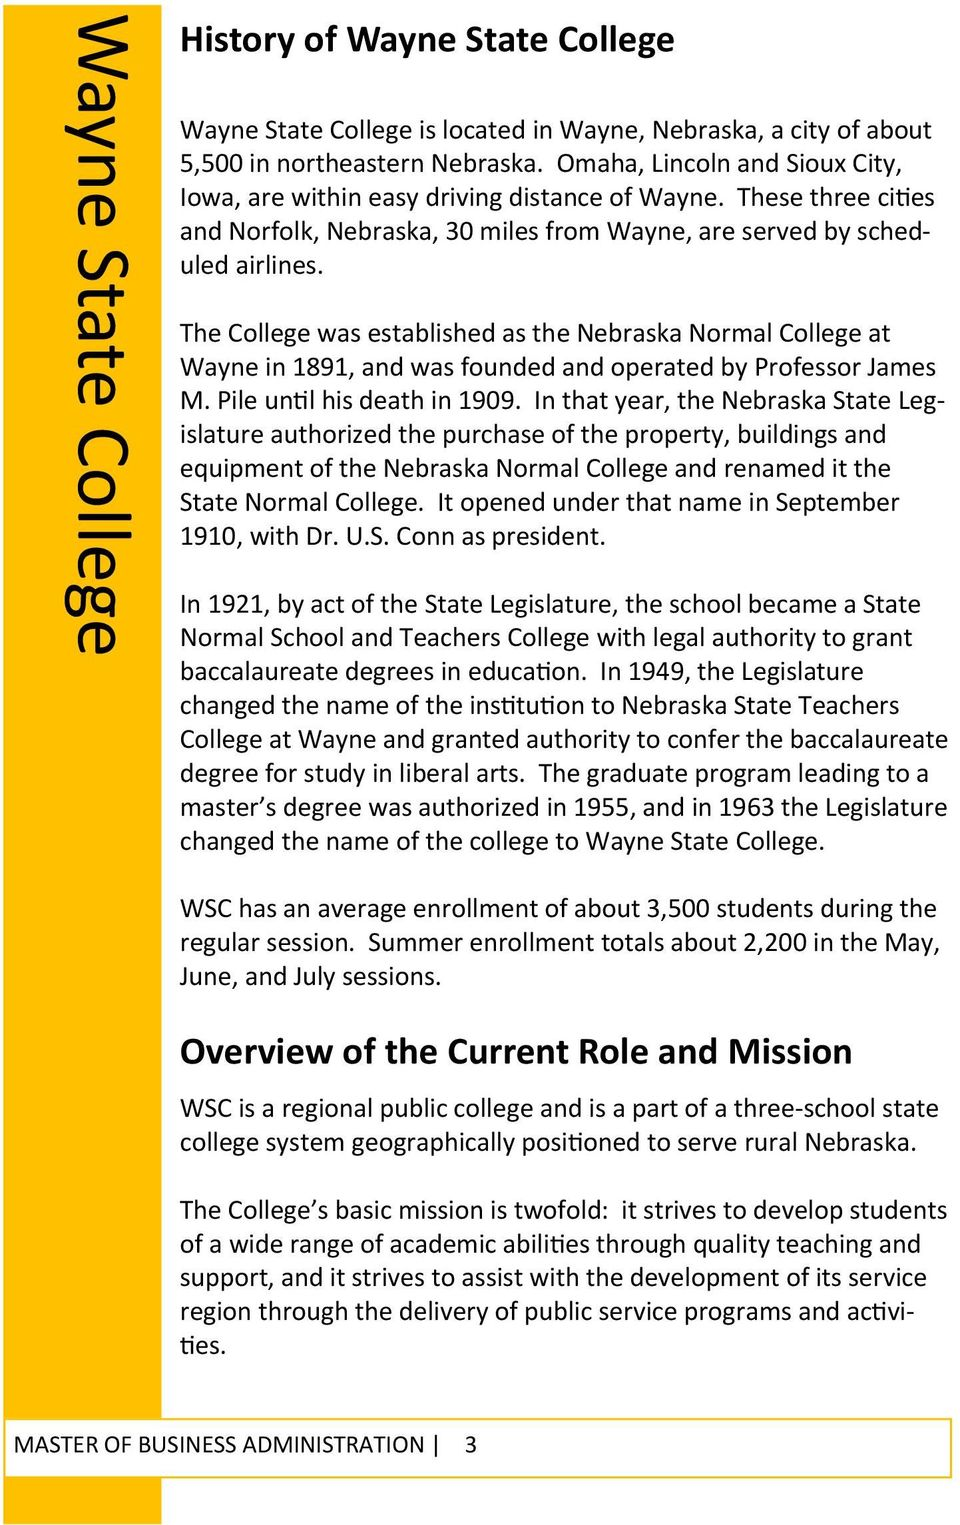 The College was established as the Nebraska Normal College at Wayne in 1891, and was founded and operated by Professor James M. Pile un l his death in 1909.